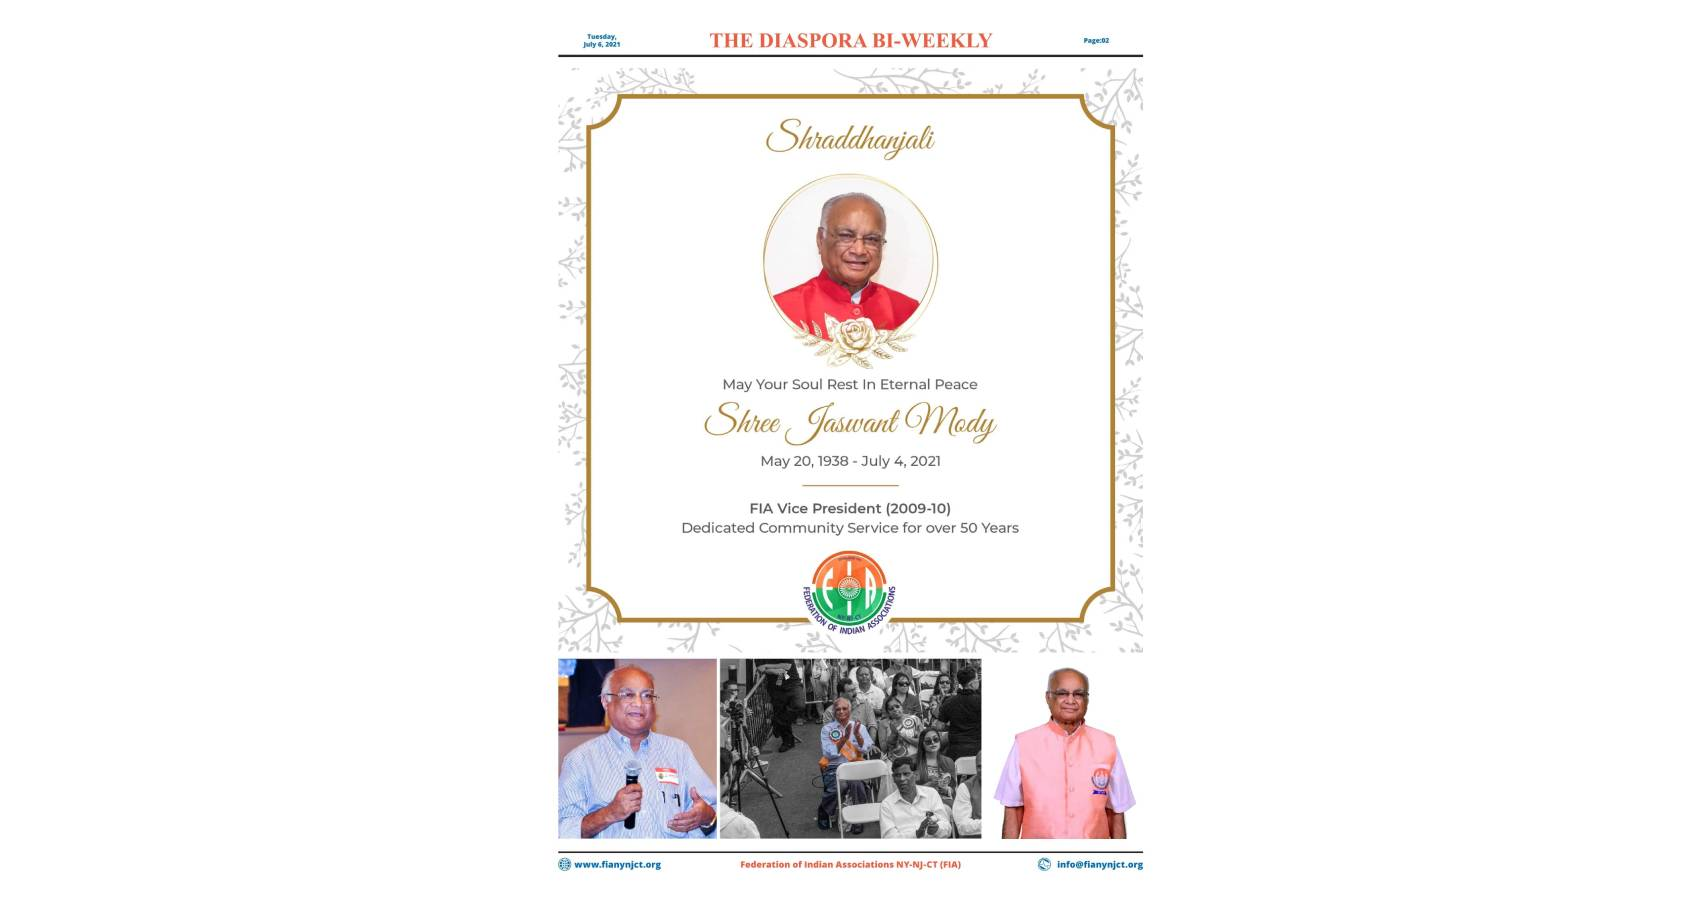 Community Leader Jaswant Mody Dies In Accident In New Jersey